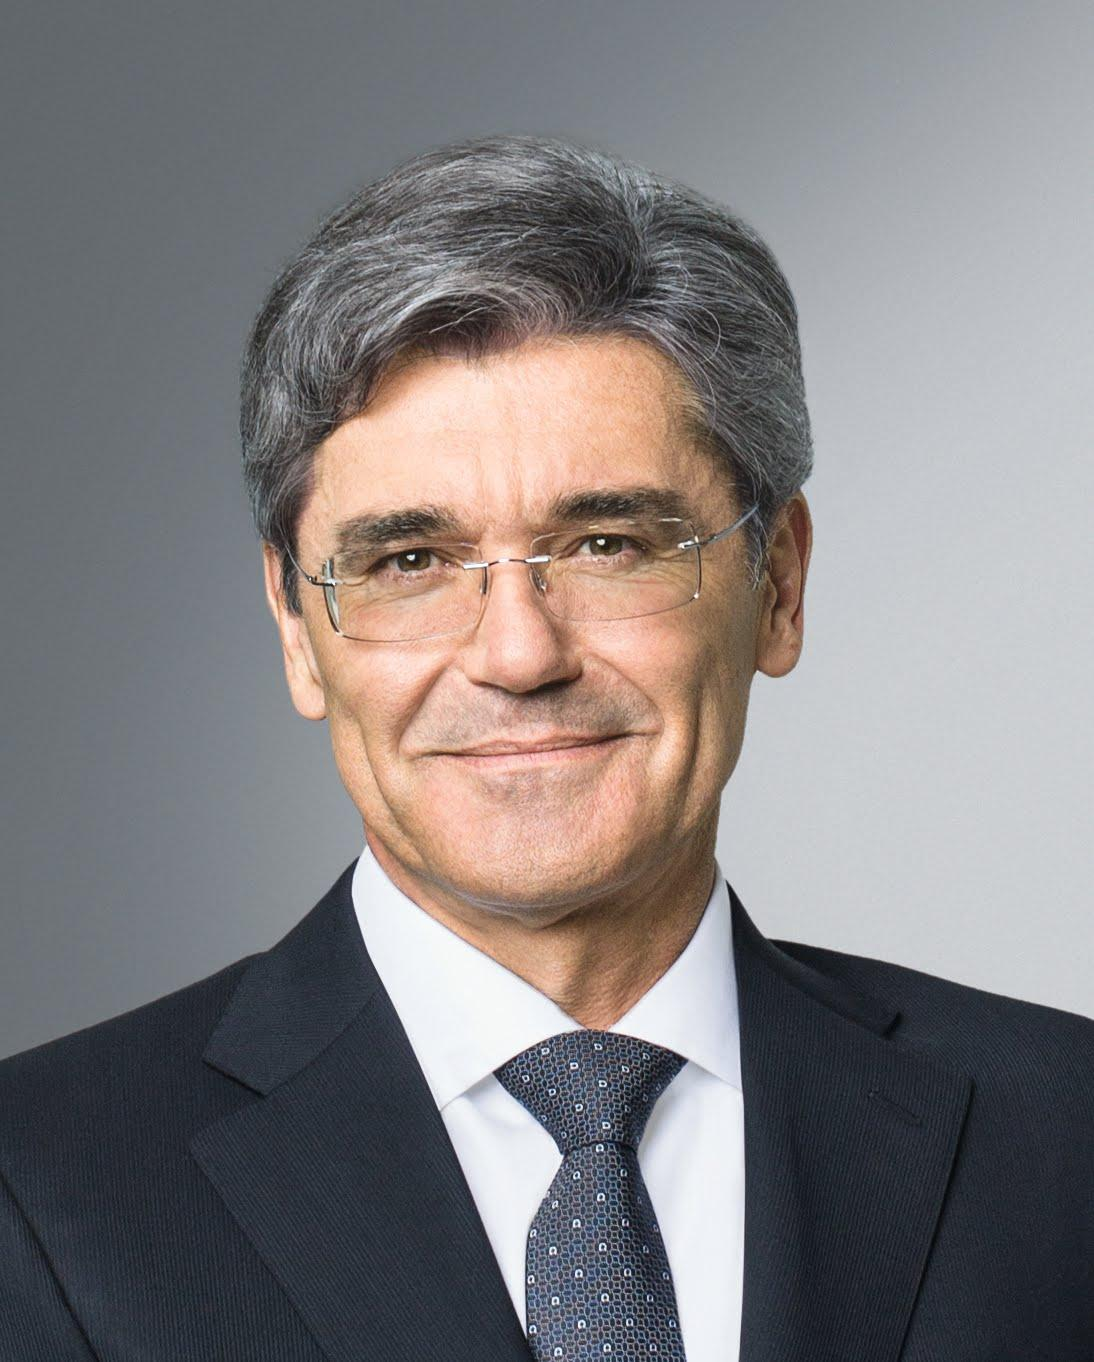 Partnering for Growth in Africa by Joe Kaeser, President and CEO of Siemens AG